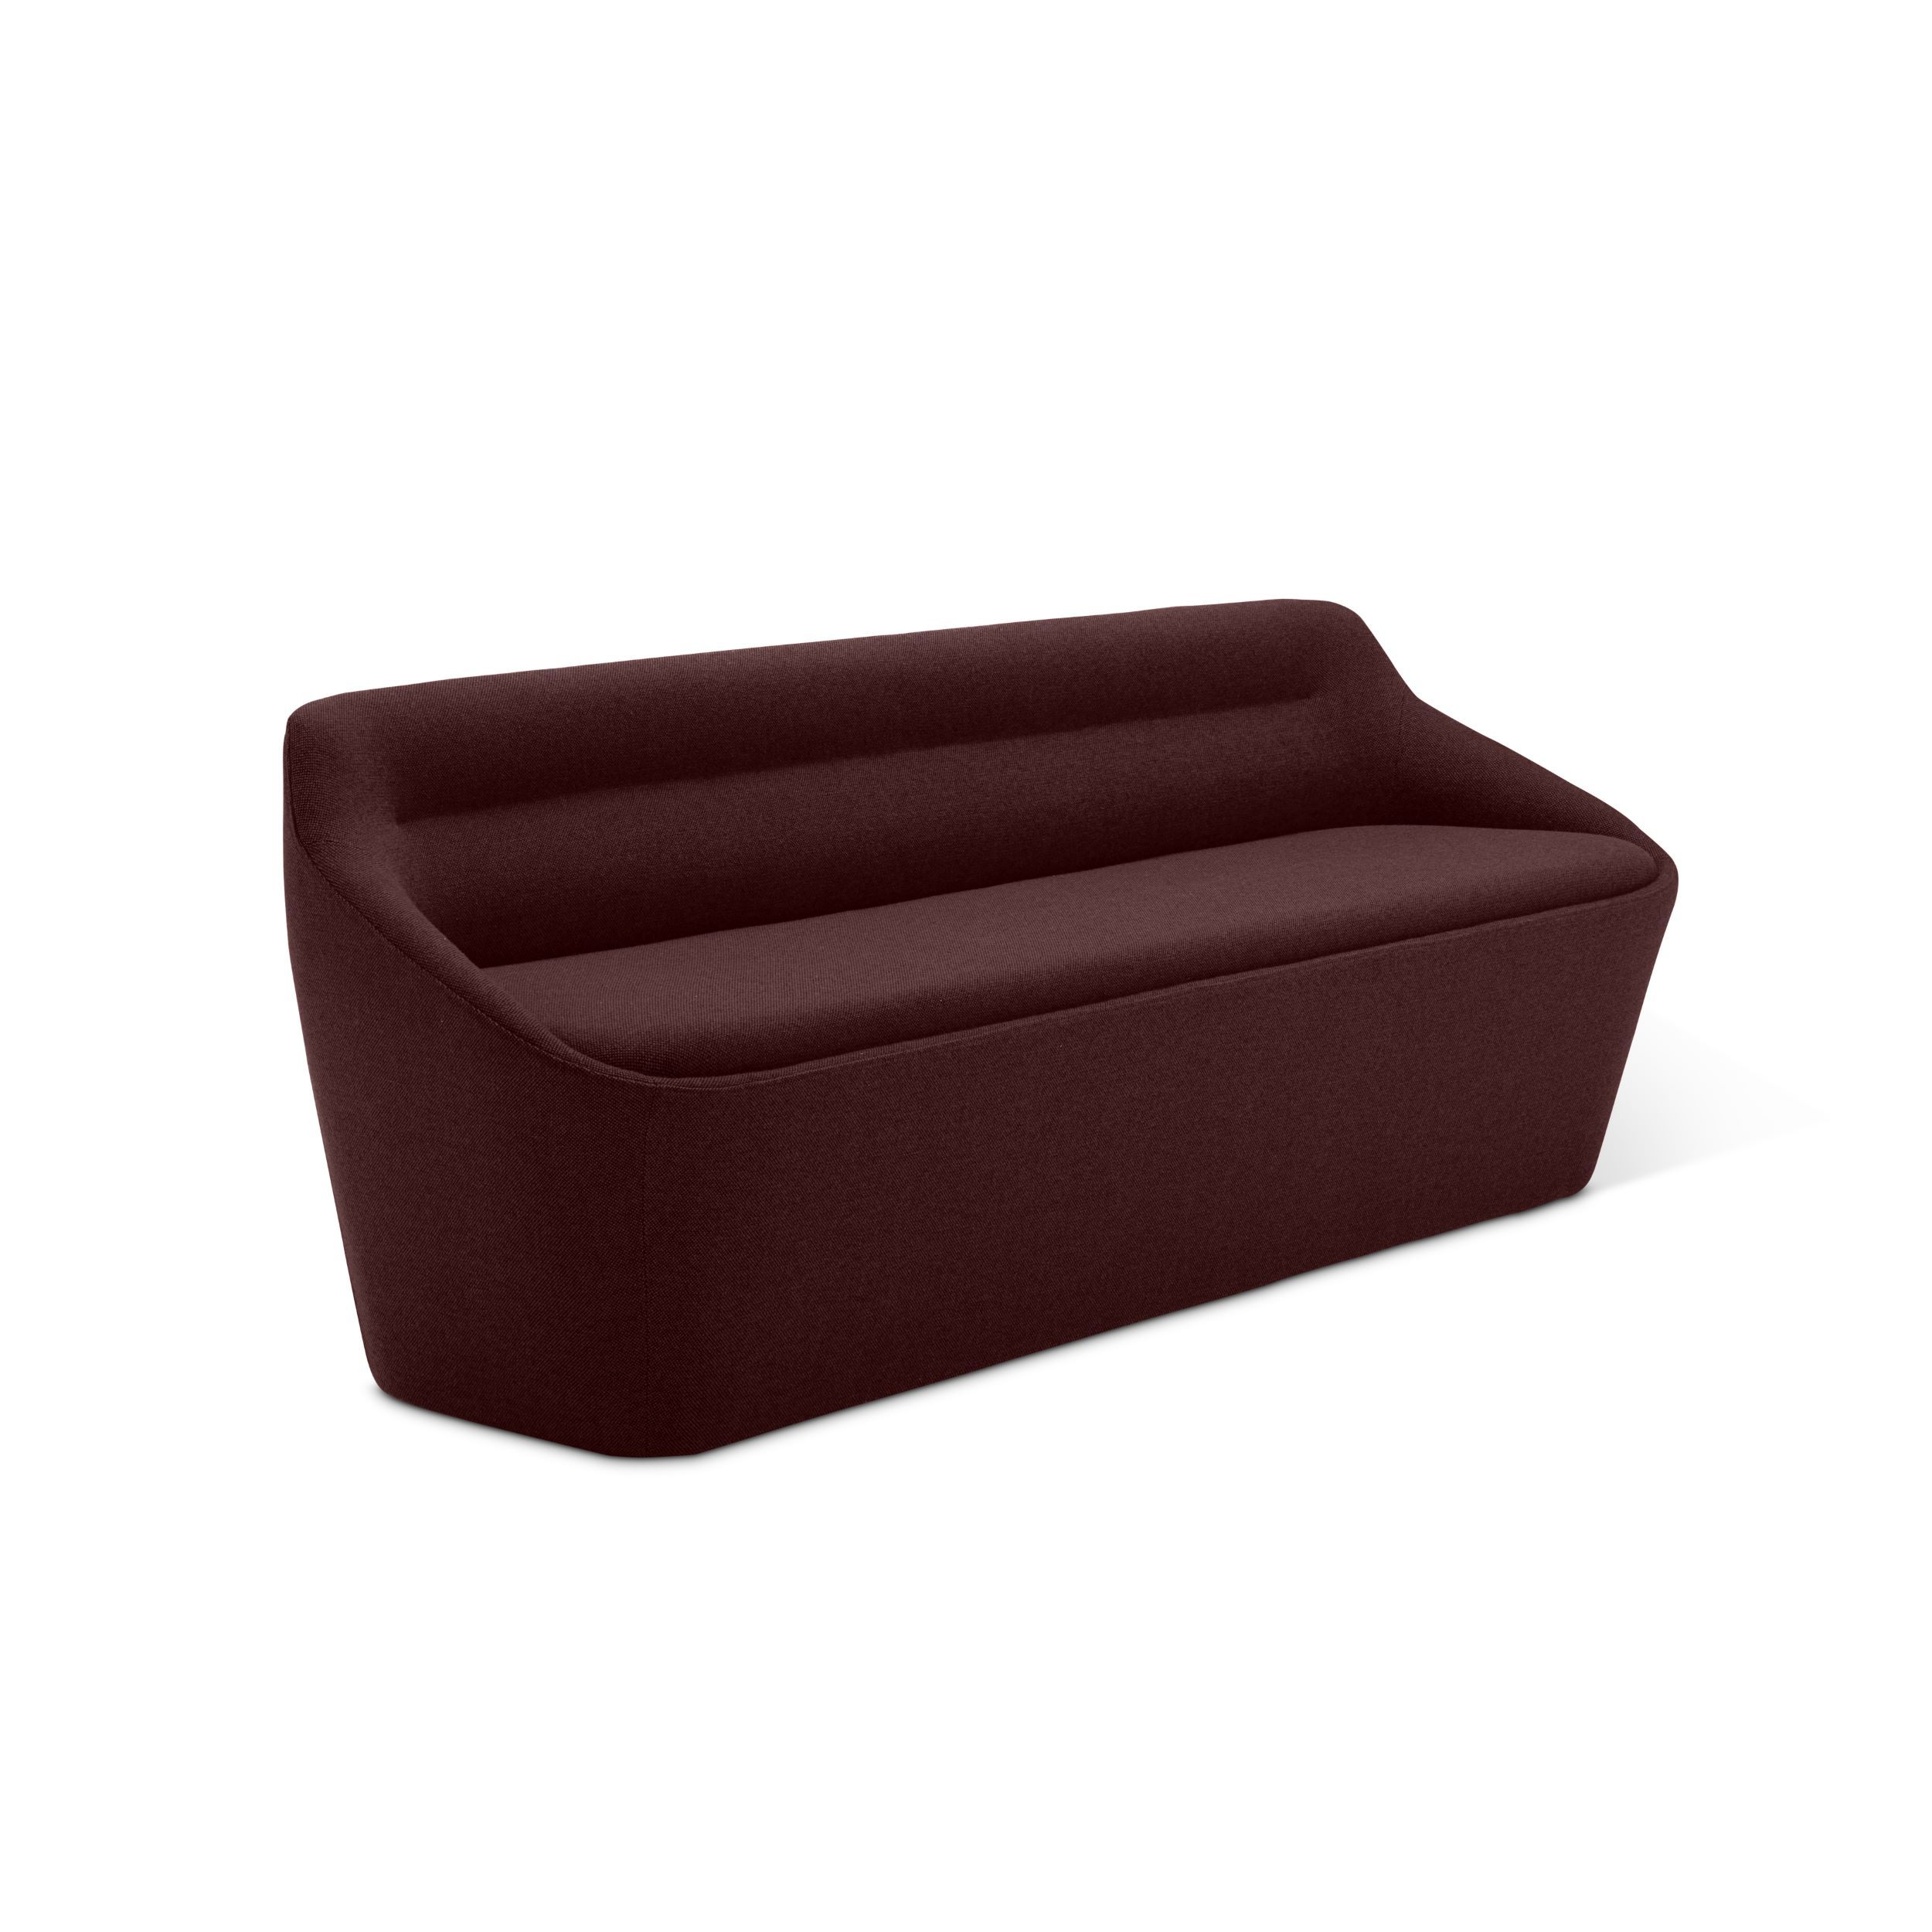 Ezy Offecct Outdoor storage box, Outdoor storage